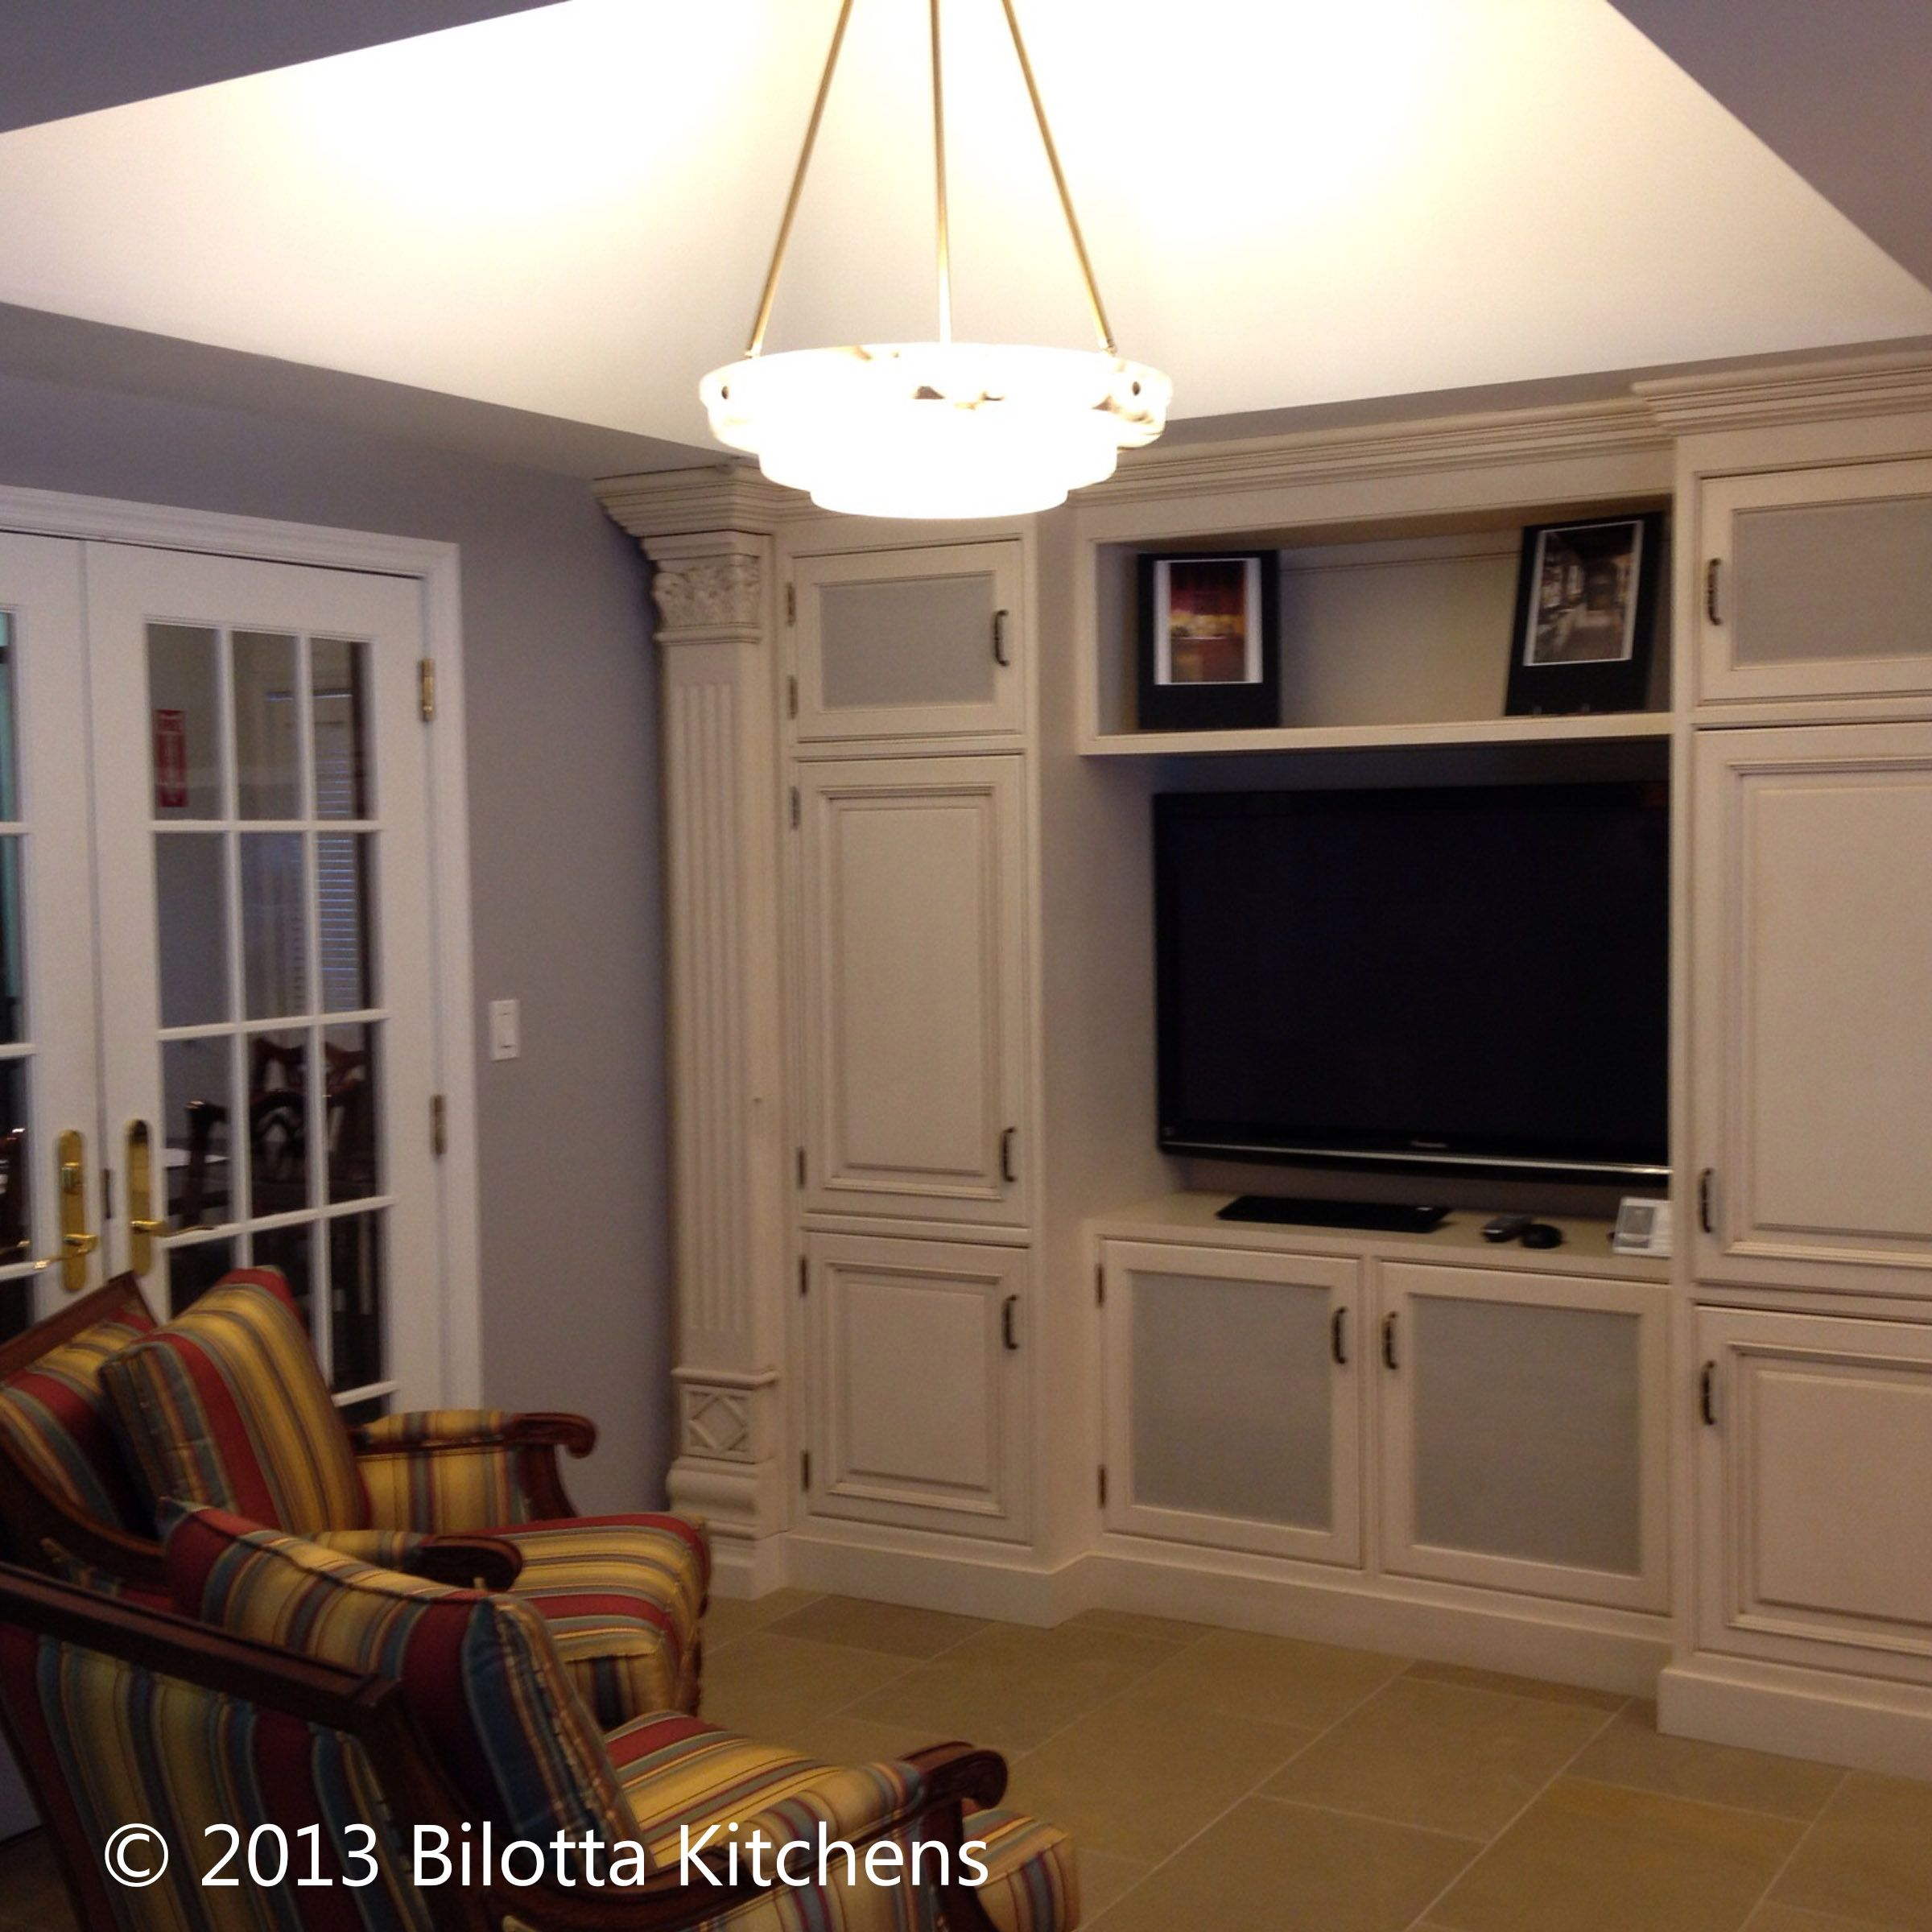 Mel Elion Used A Classic Tray Ceiling Here Creating A